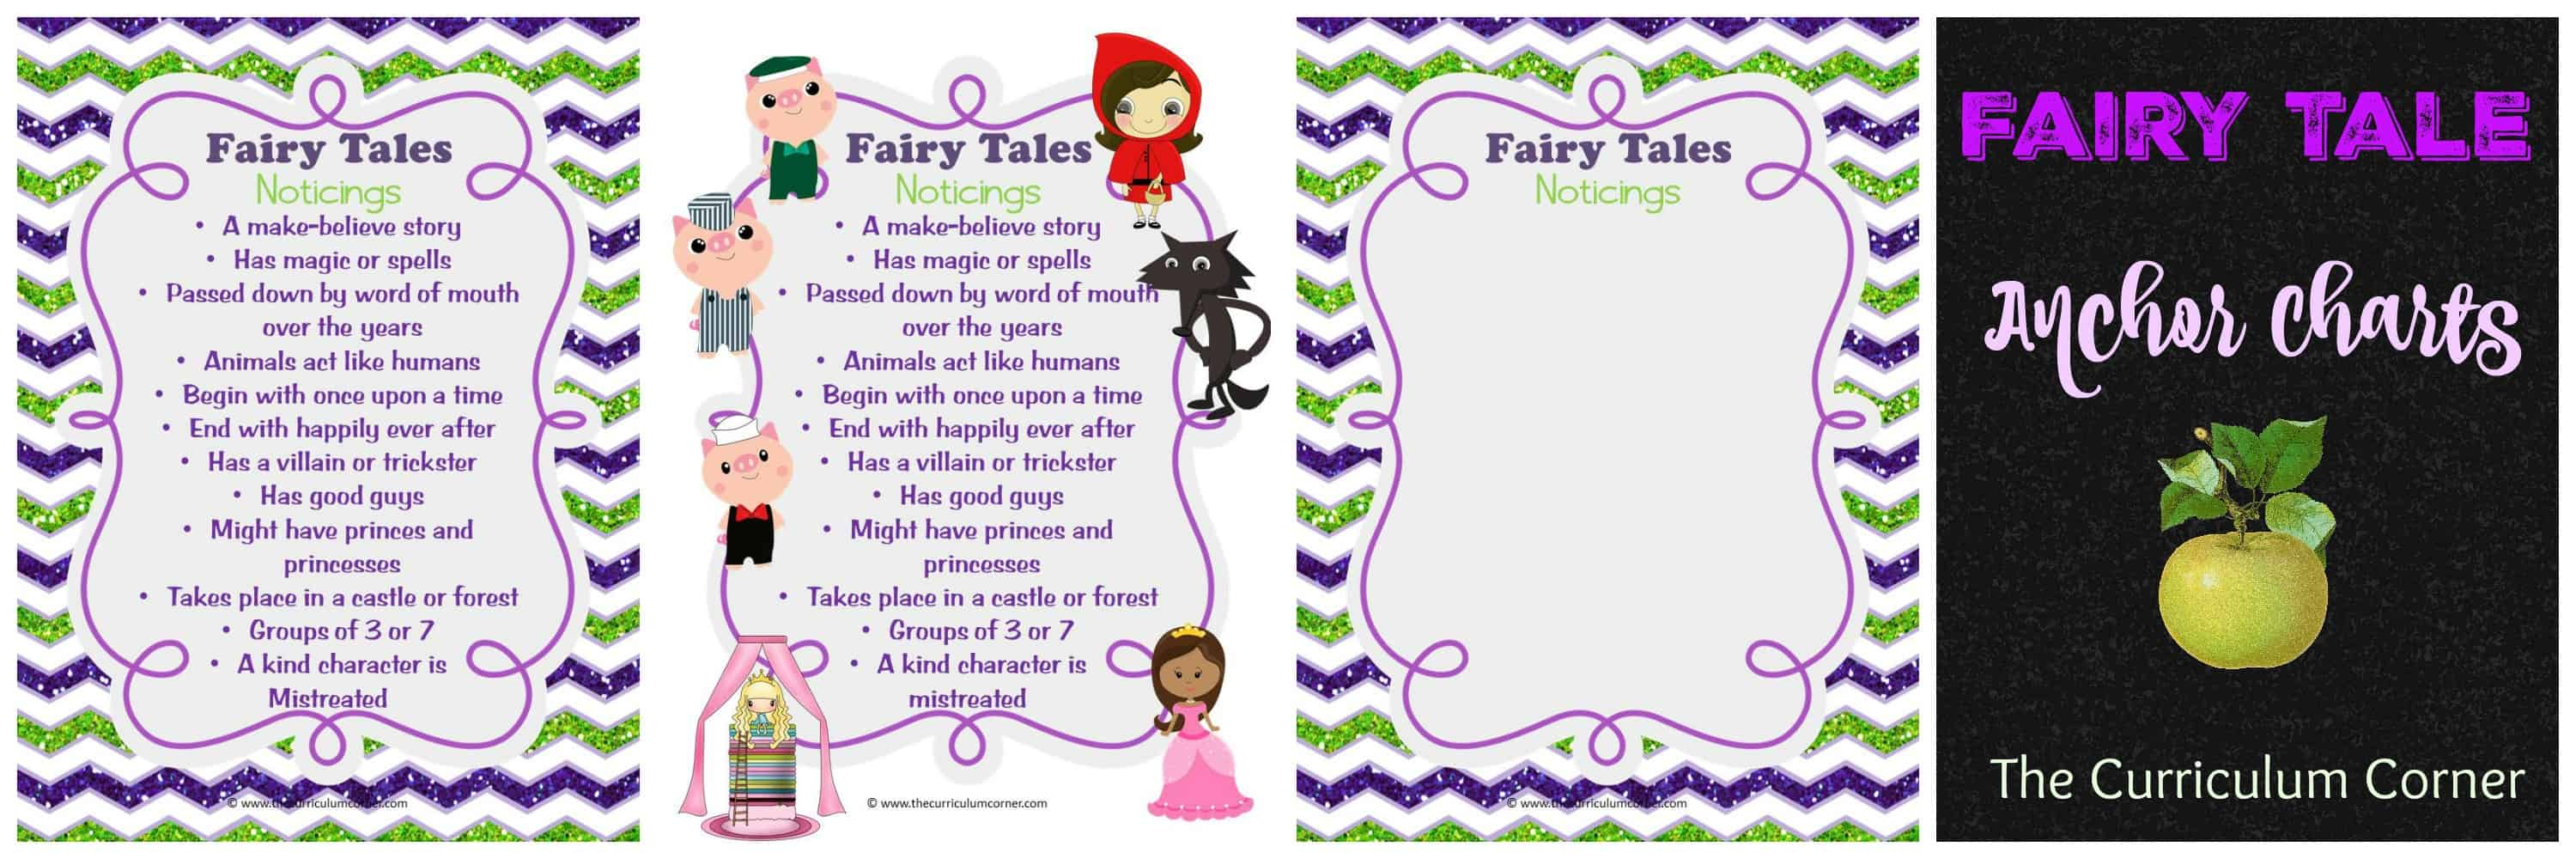 hight resolution of Fairy Tale Reading Unit of Study - The Curriculum Corner 123